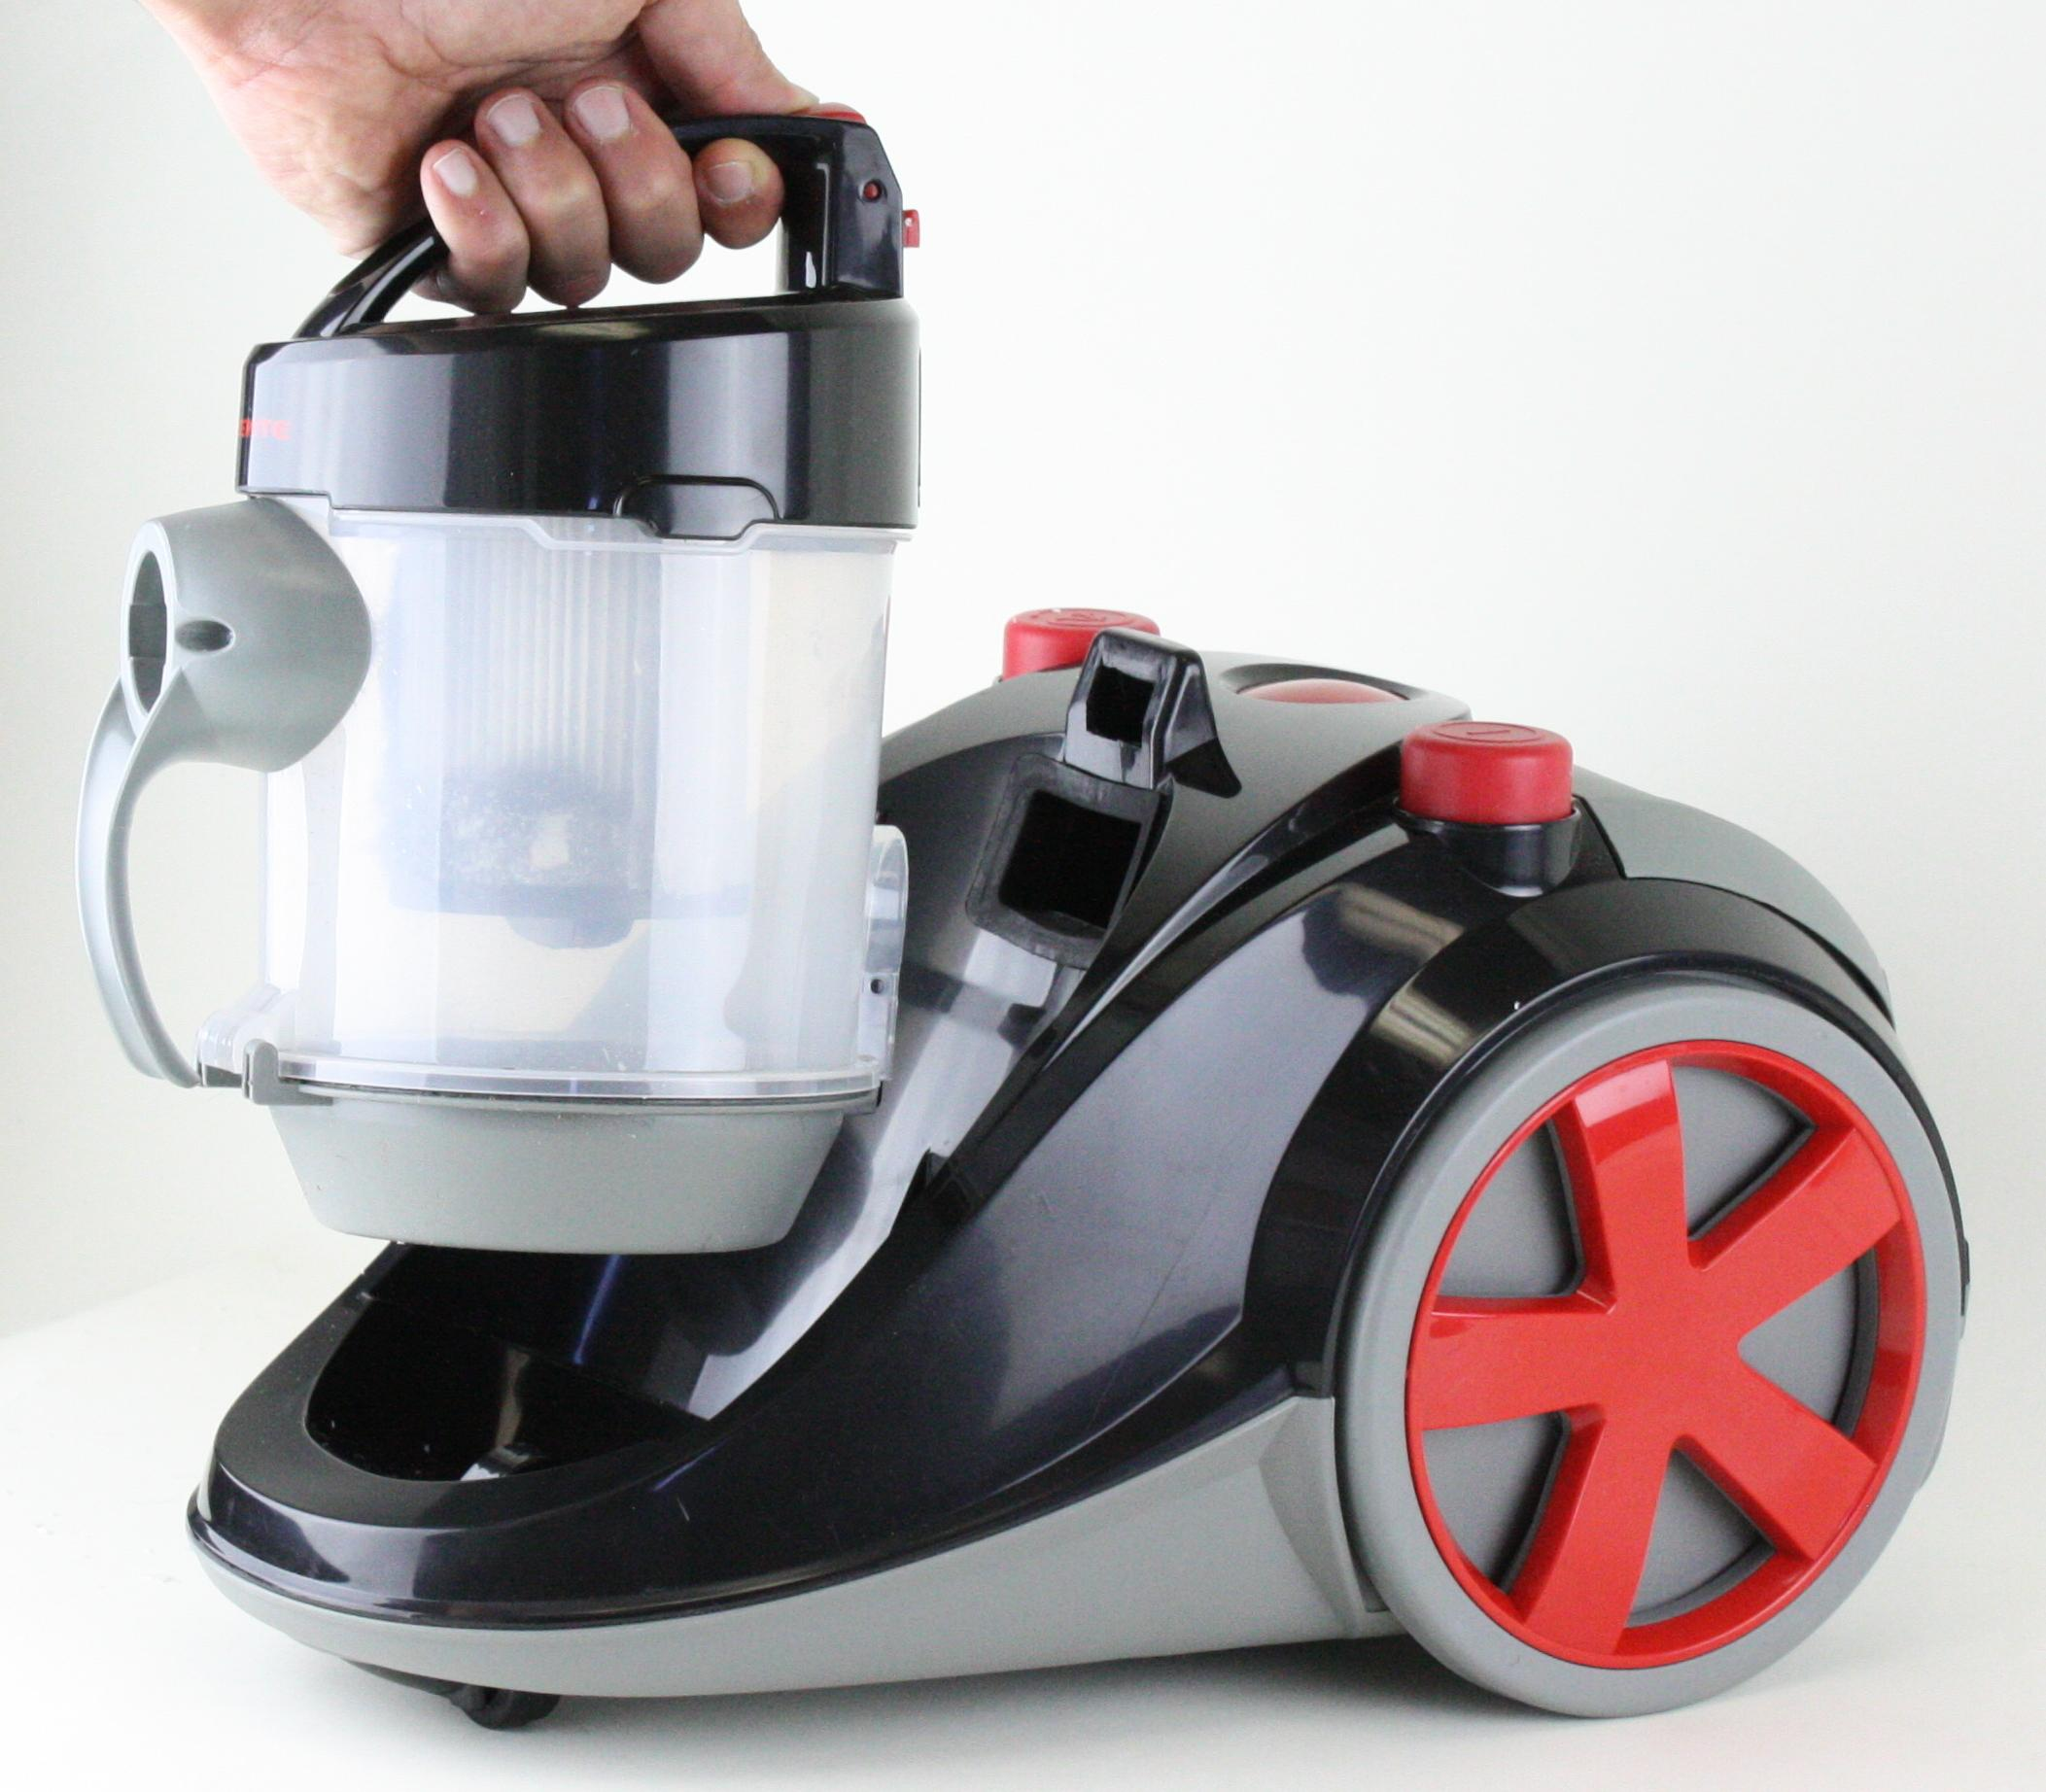 Review: Electrolux Harmony HEPA Canister Vacuum Cleaner